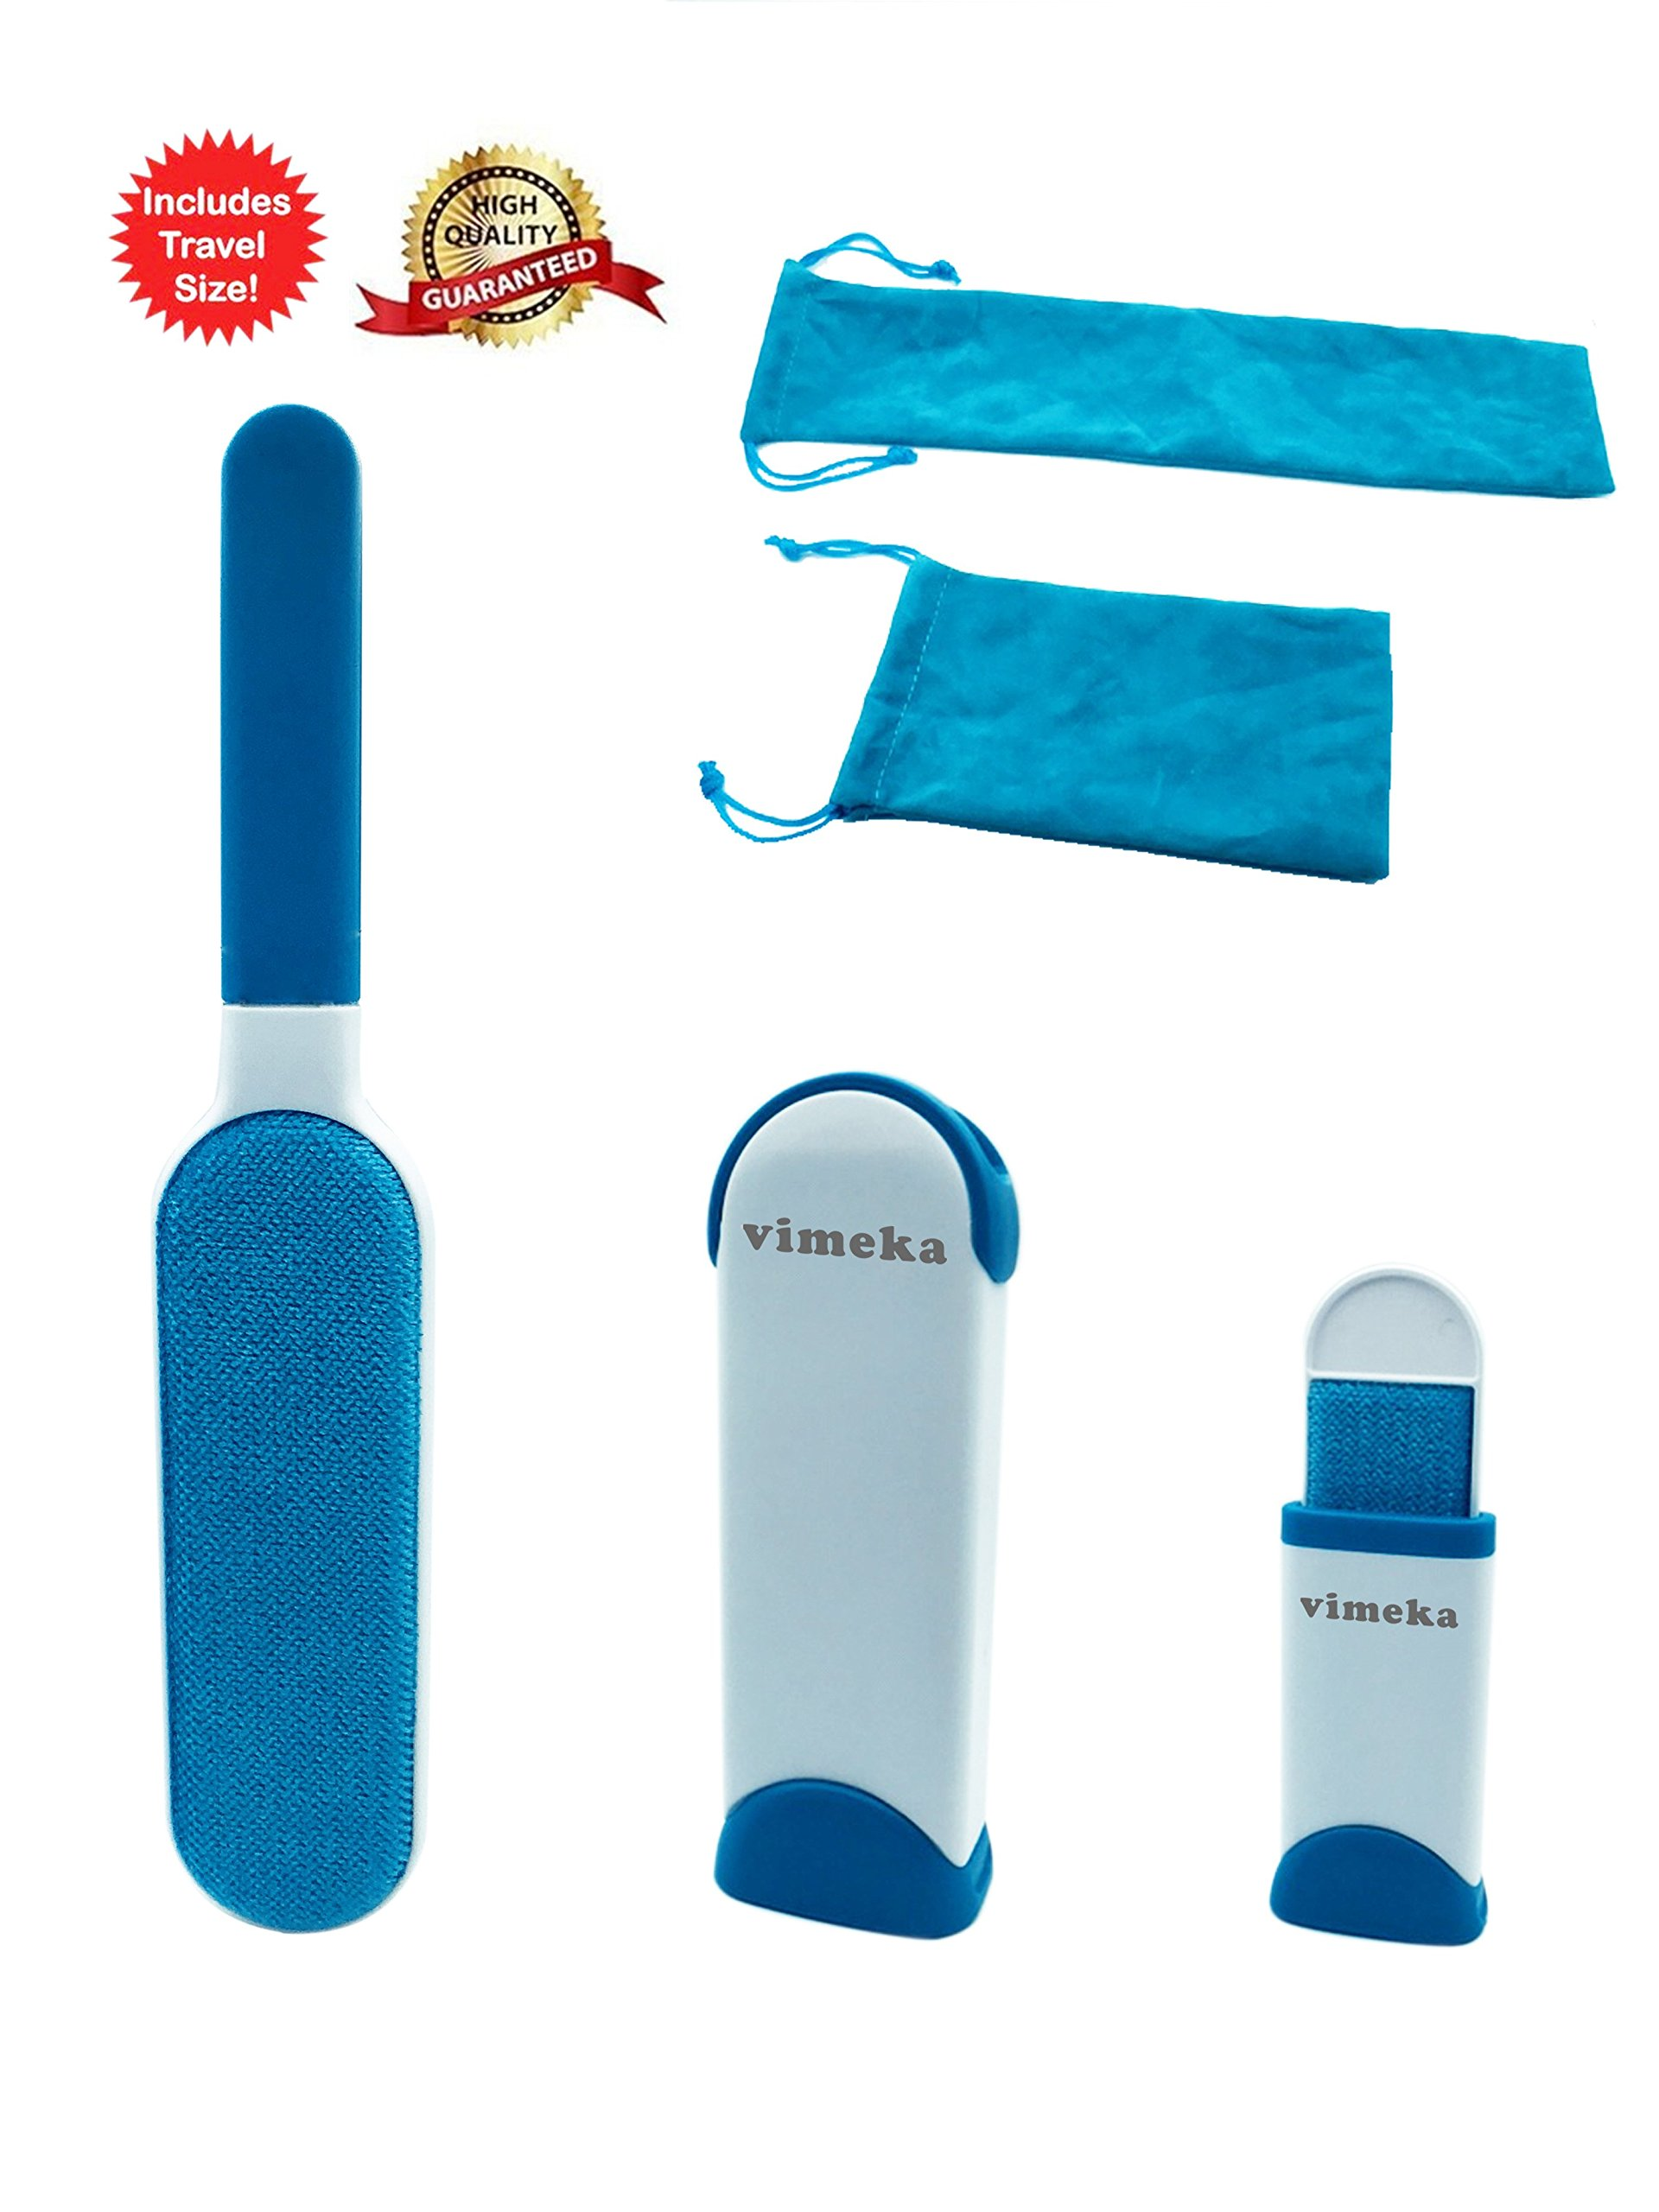 VIMEKA Pet Hair Remover Brush,Fur Wizard,Lint Remover,Simple Pet Hair Remover from Clothing,Double-Side Lint Brush as Seen on TV for Dog and Cat,Furniture Travel Size,Blue